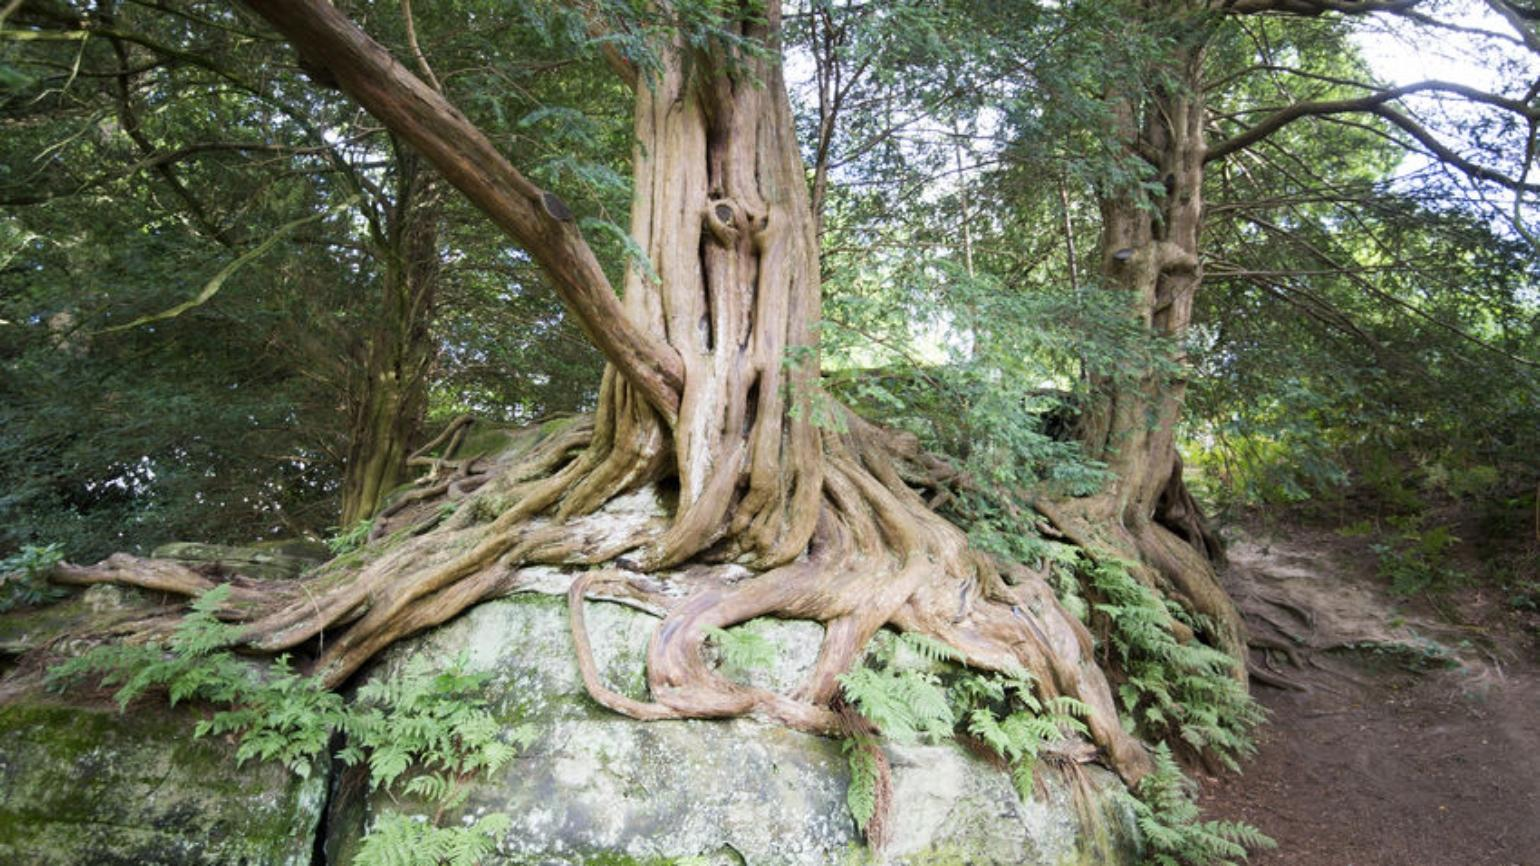 Yew tangling roots over rock